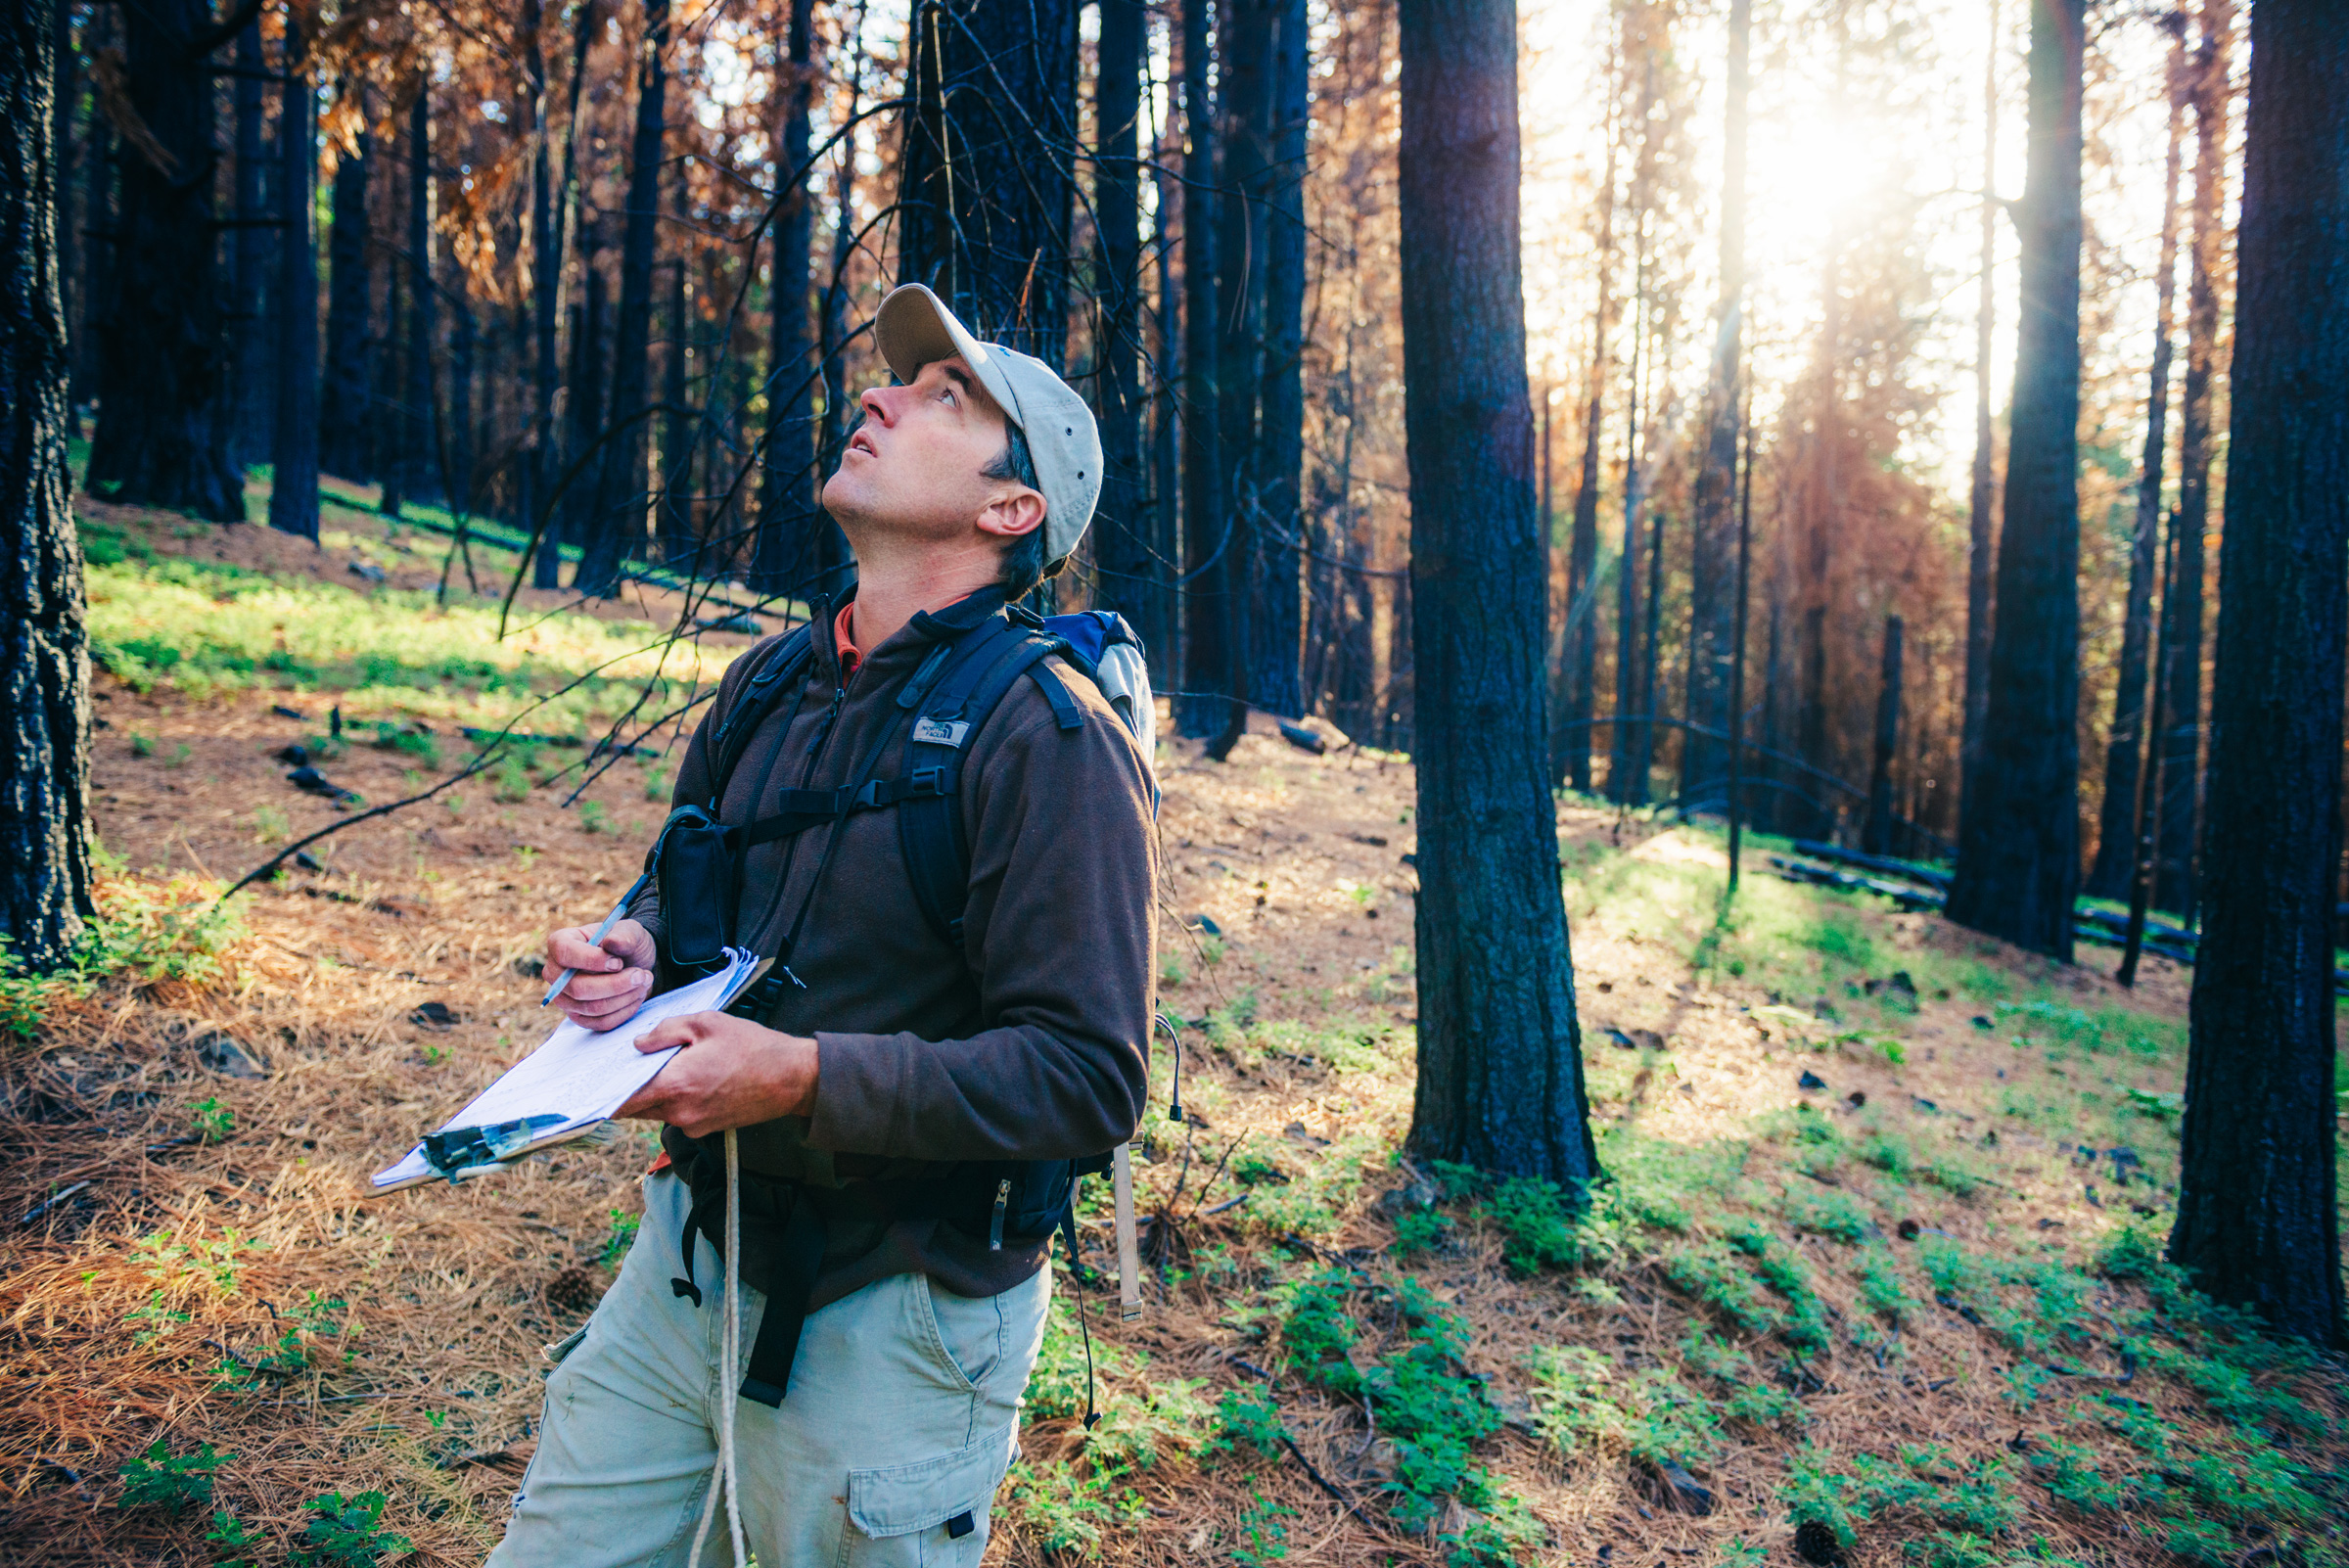 Using this auditory repertoire of several hundred calls, Ryan Burnett monitors birds in five-minute point counts to assess the long-term health of habitat. The Black-backed Woodpecker's call is a sharp, distinct check. Ken Etzel